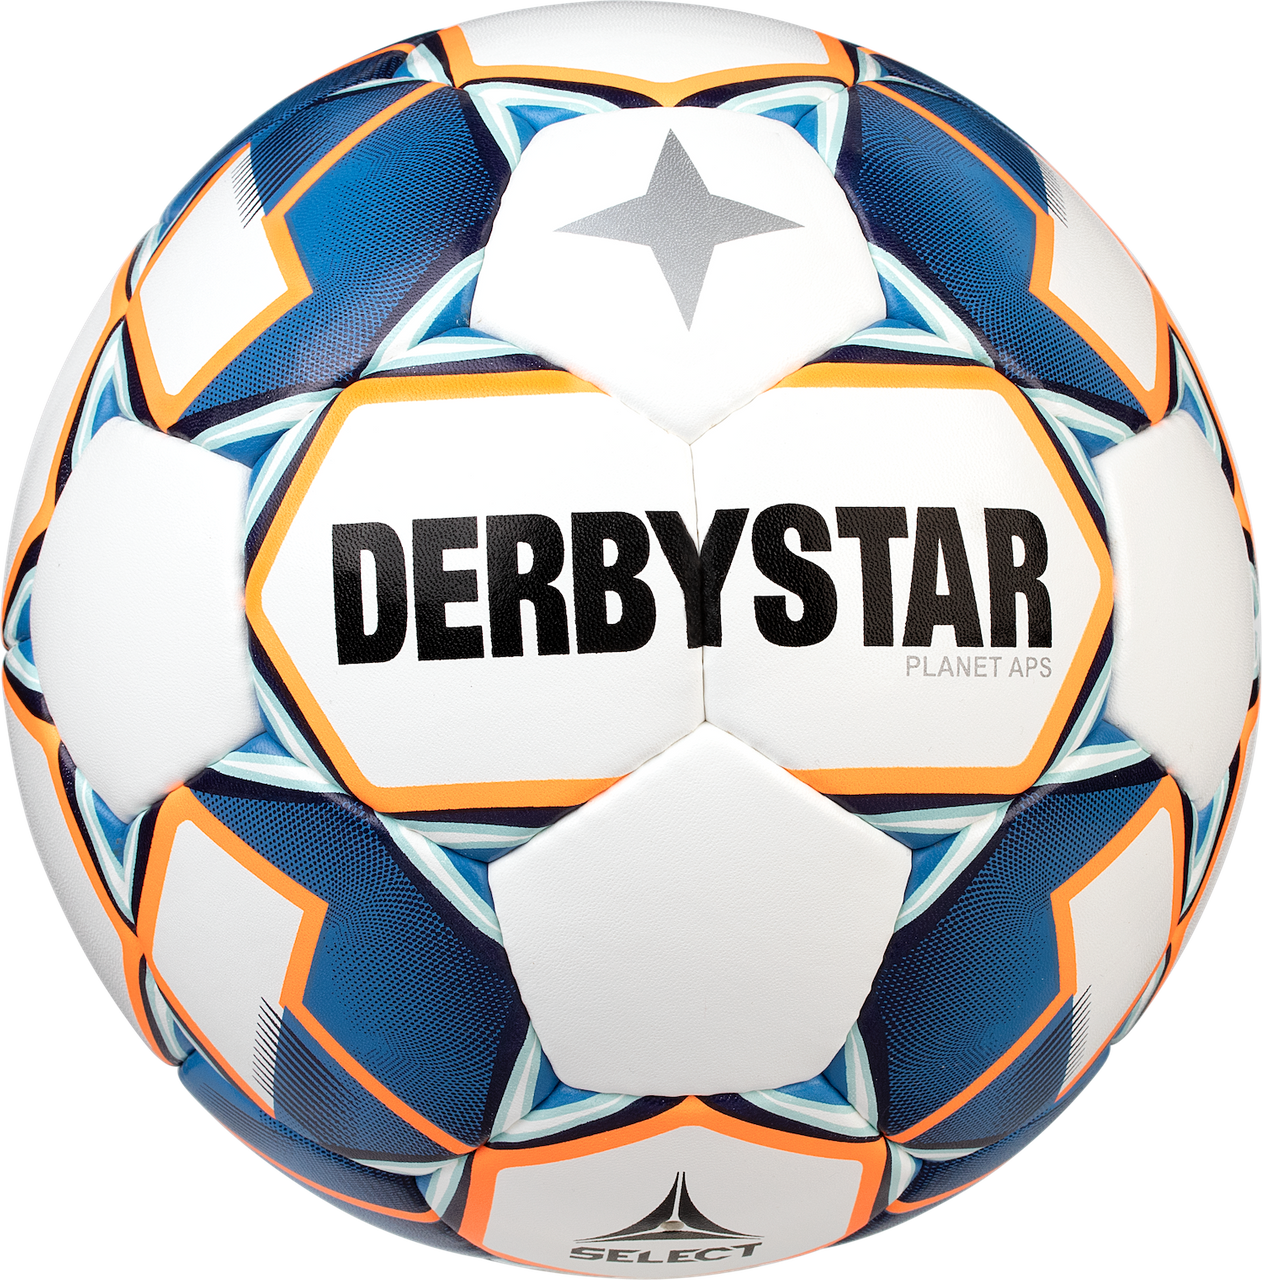 DERBYSTAR Spielball - PLANET APS